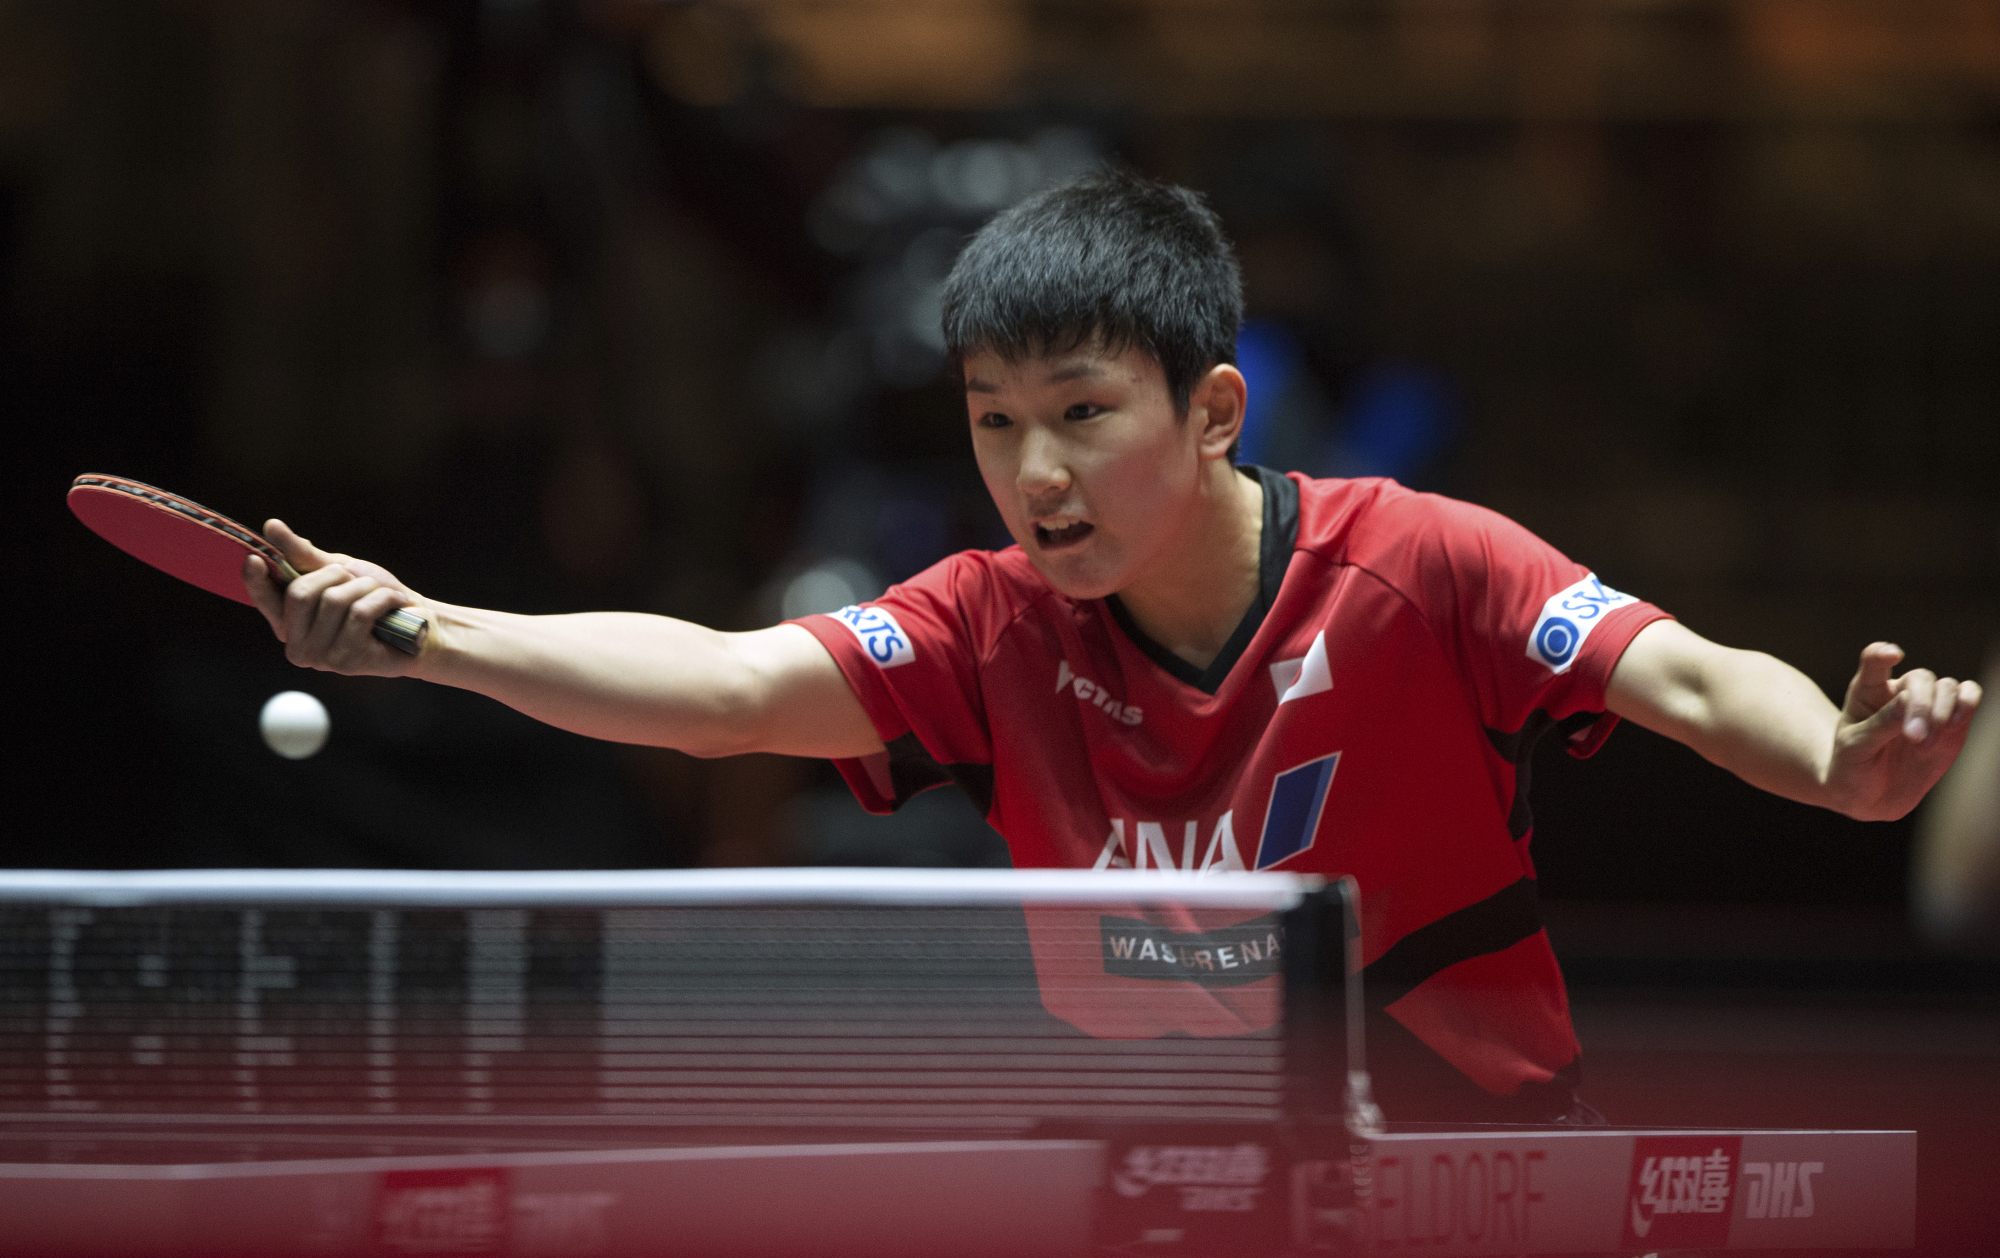 Tomokazu Harimoto competes against Jun Mizutani in the second round of the men's singles at the World Table Tennis World Championships in Duesseldorf, Germany, on Thursday.   AP